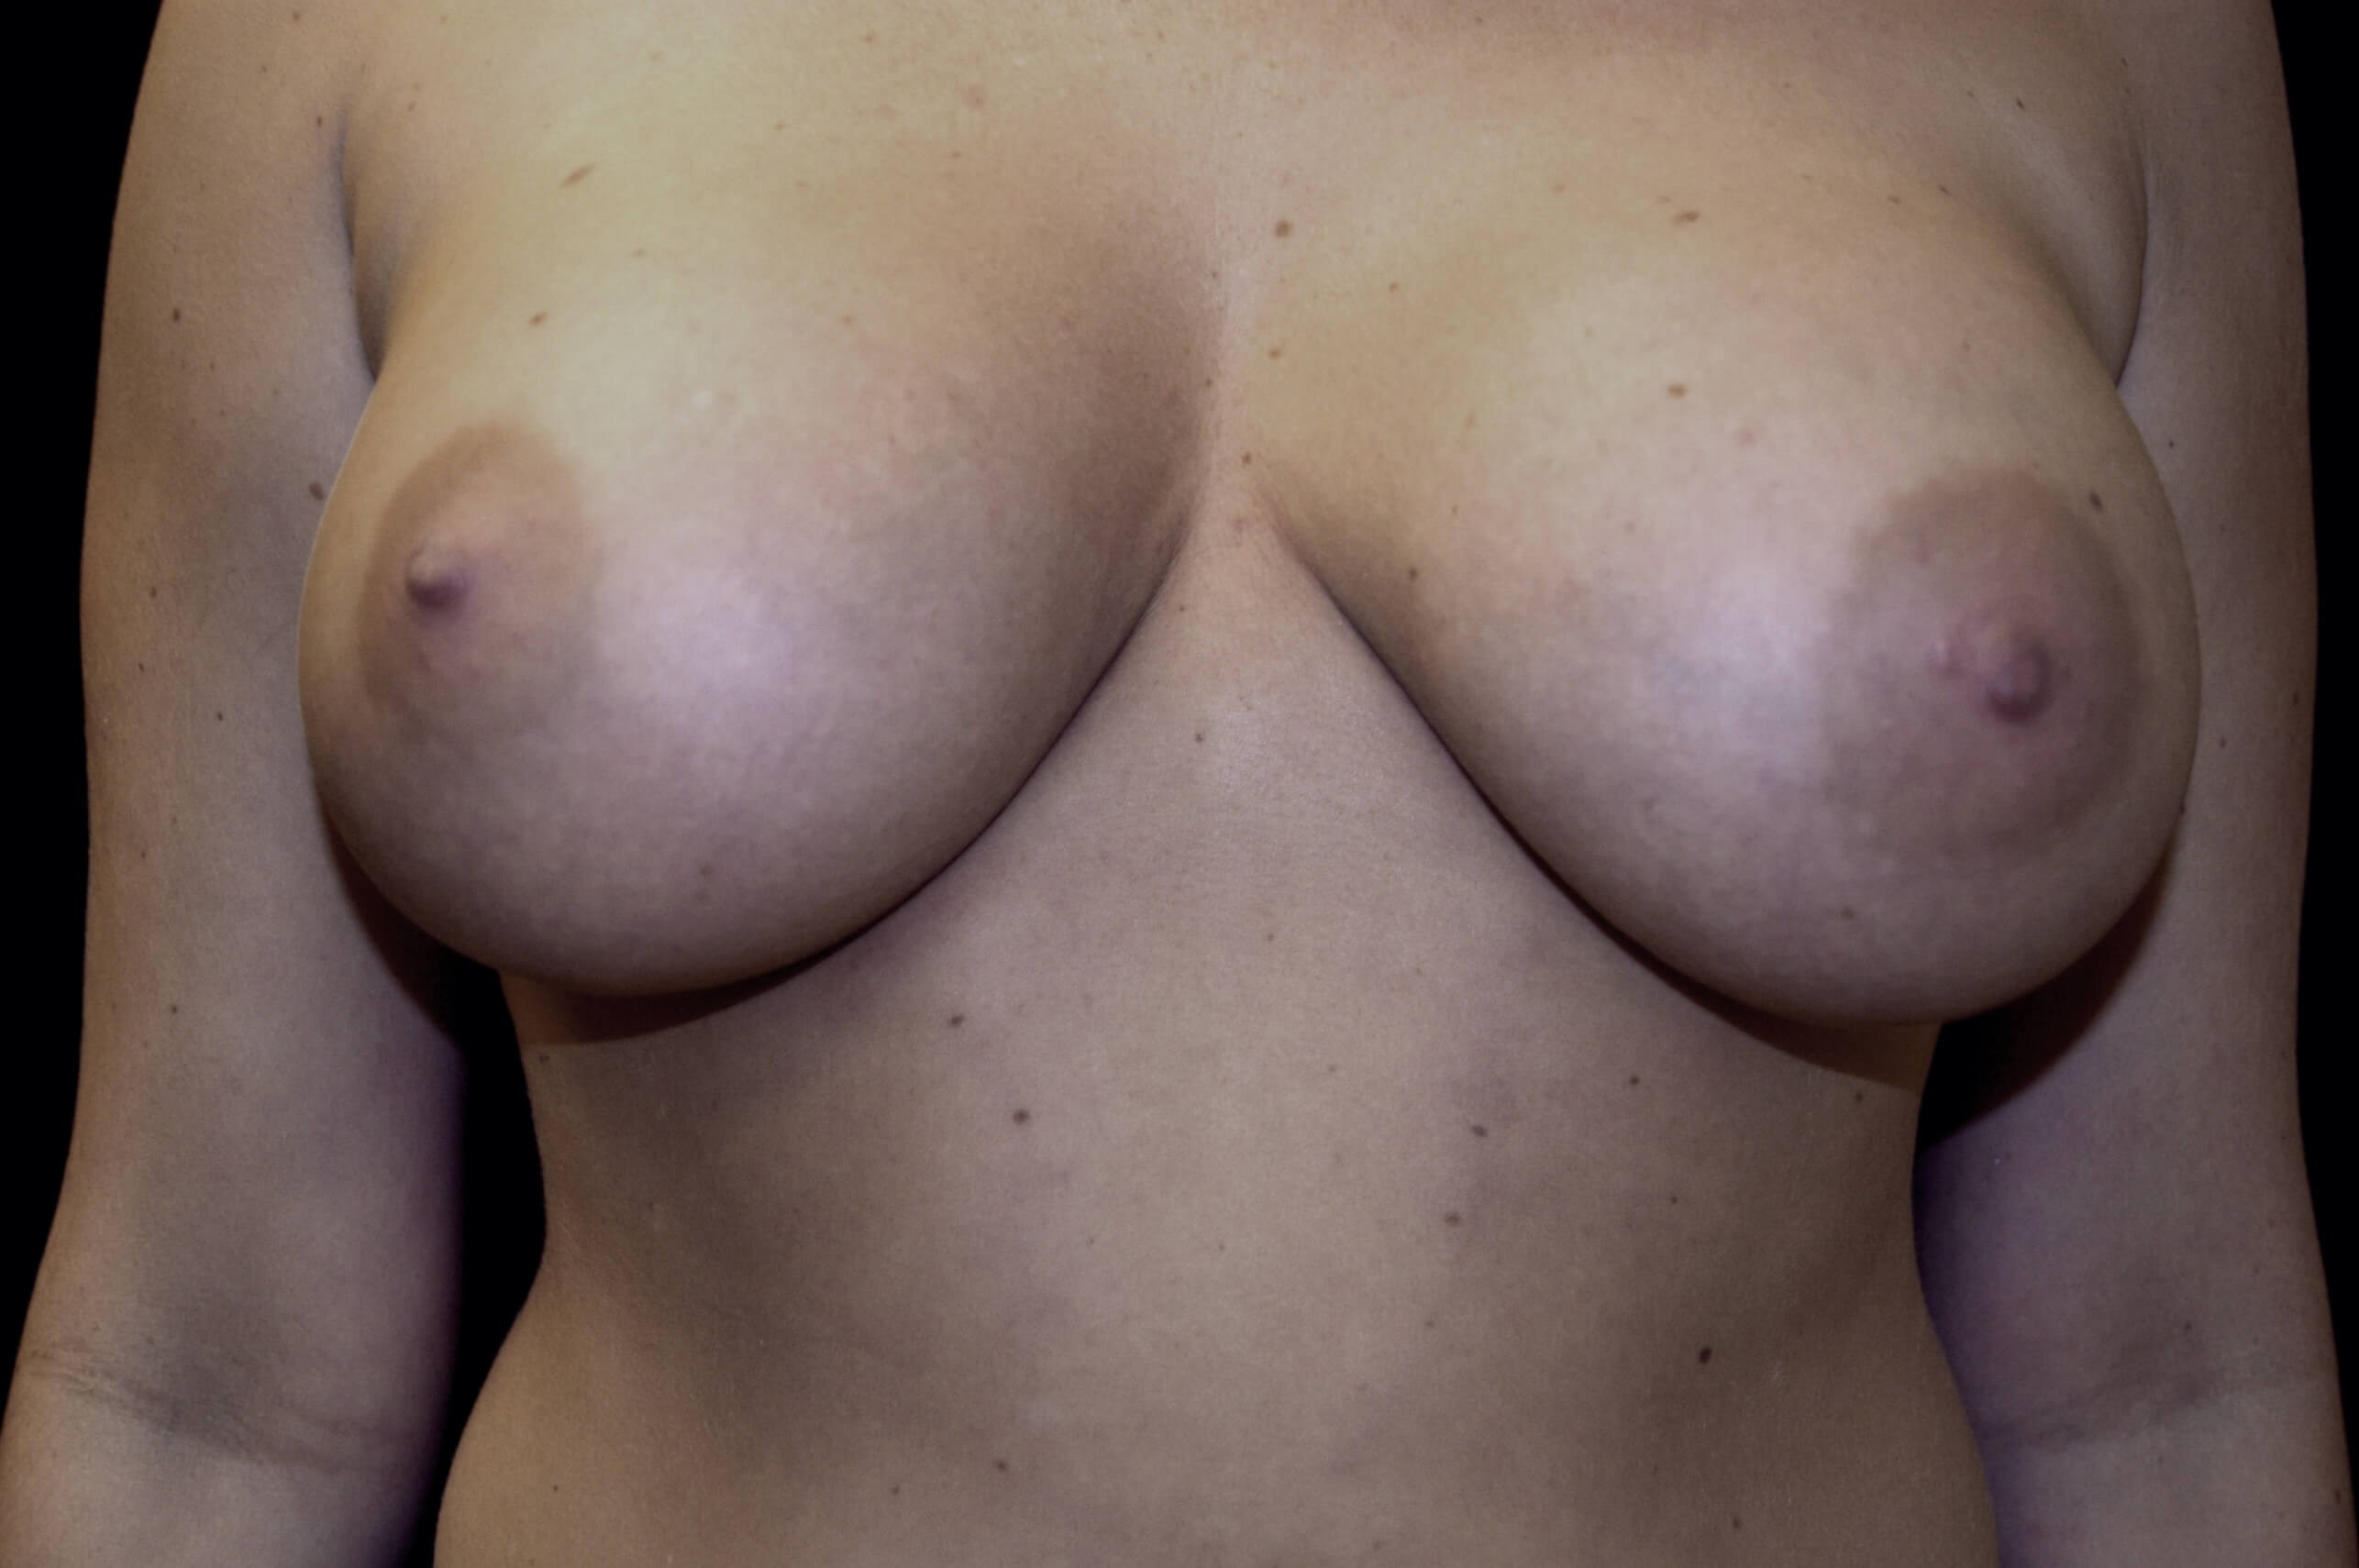 PLANO WOMAN HAS BREAST IMPLANT REPLACEMENT FOR RUPTURED BREAST IMPLANT.